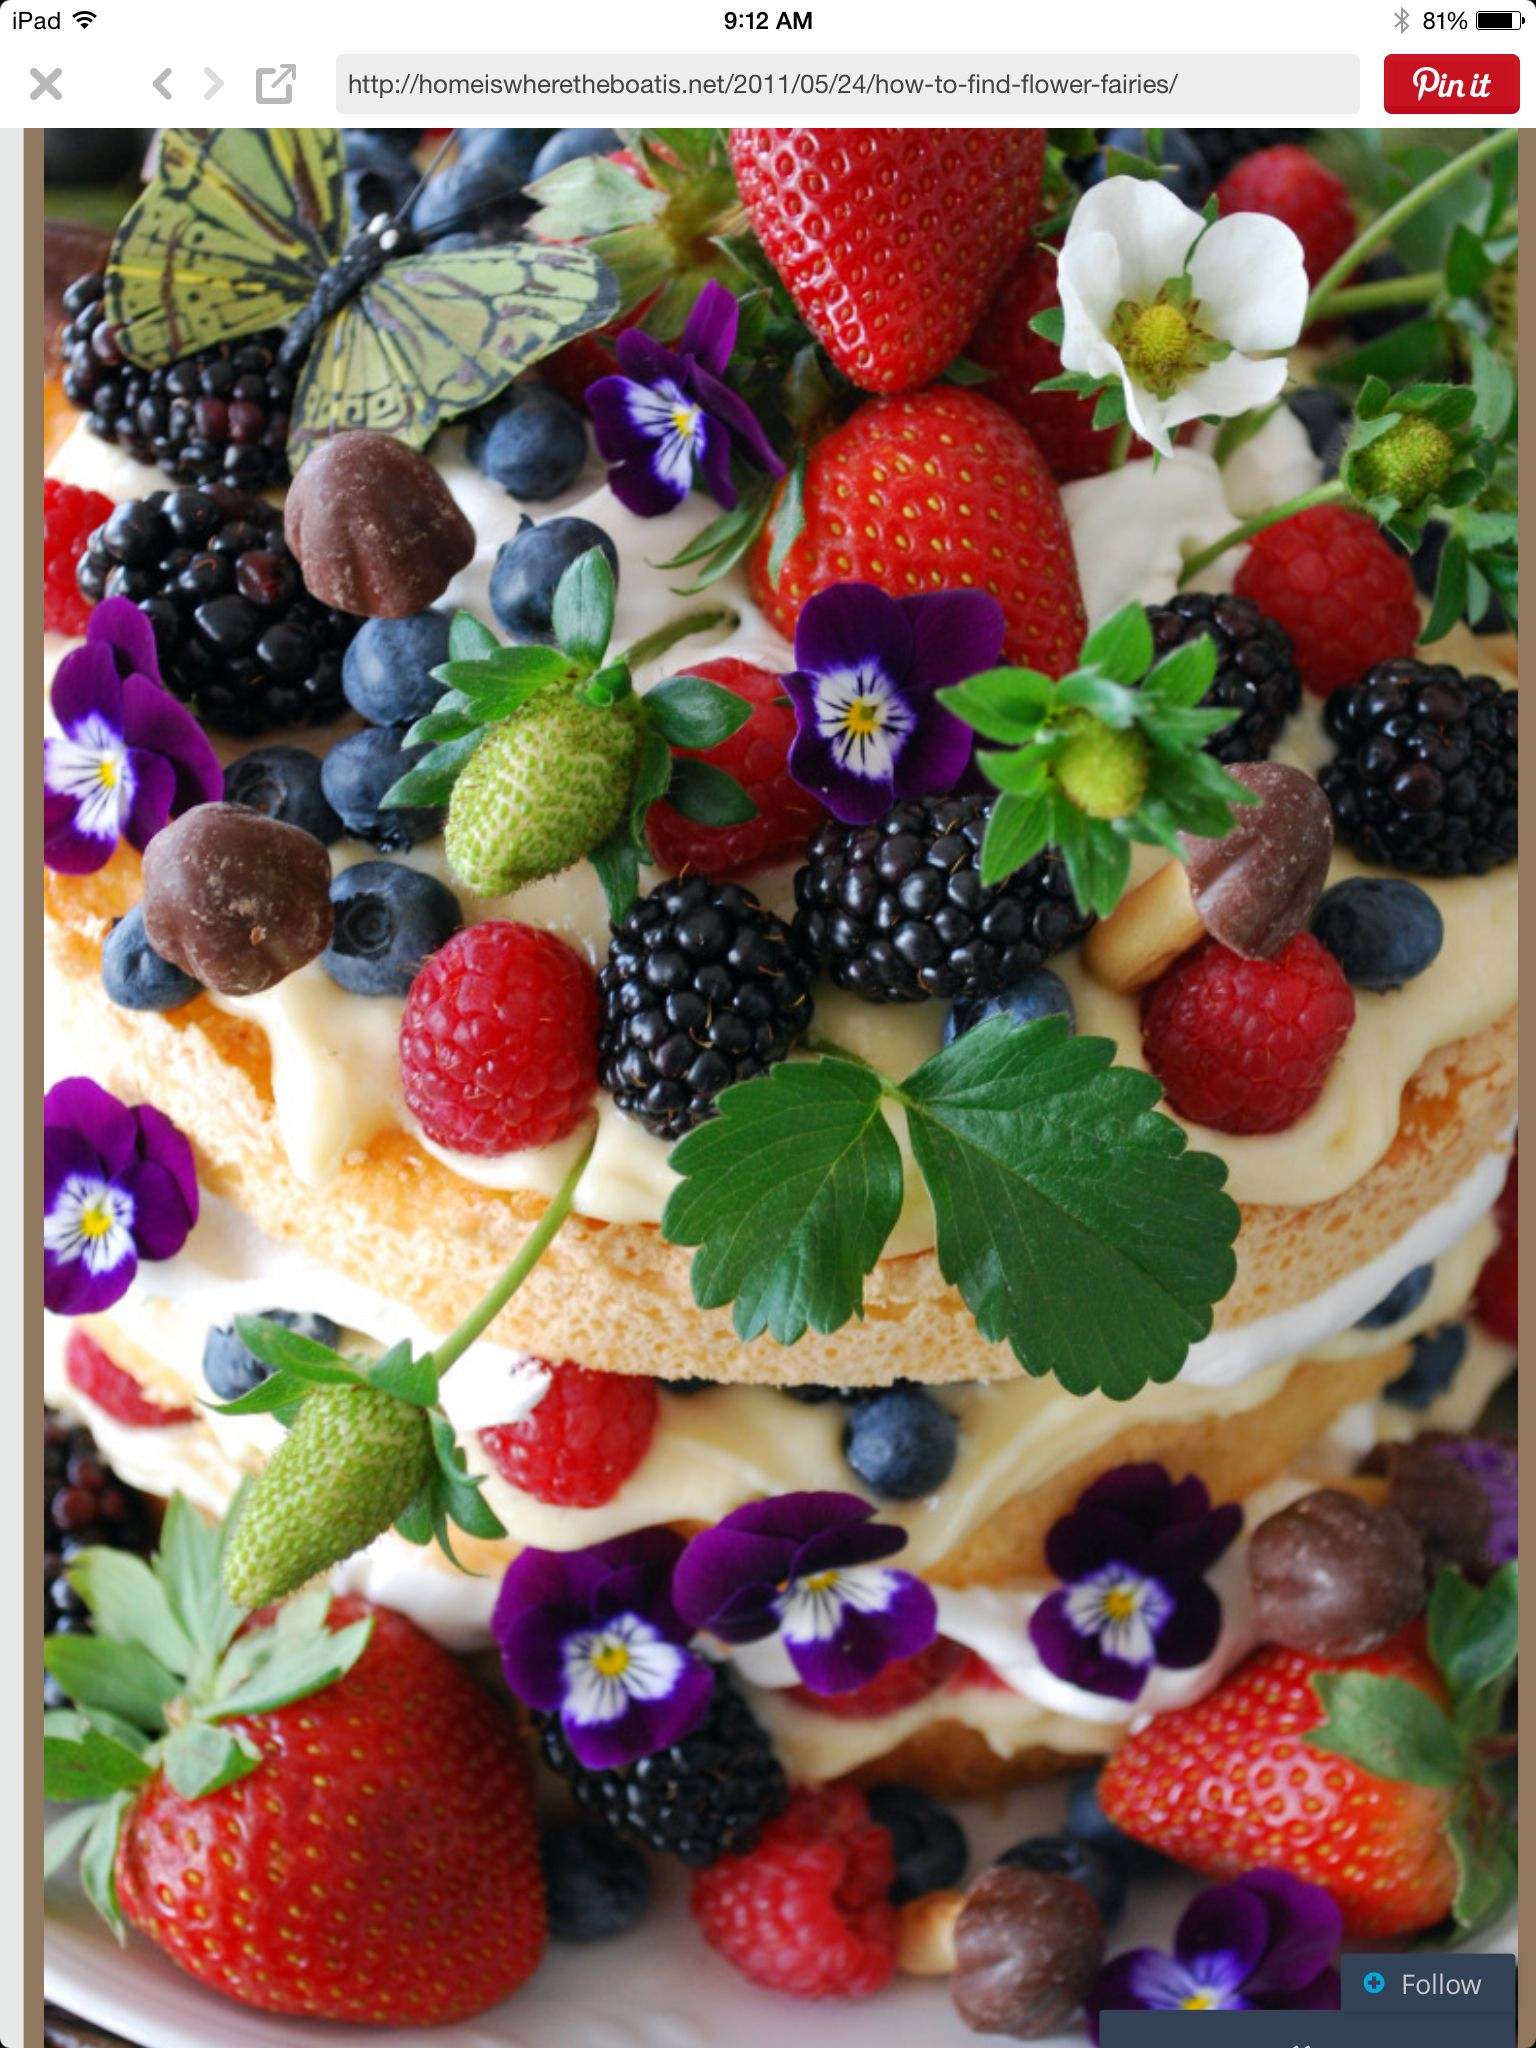 Fairy cake decoration. Angel food cake, layered with whipped cream and lemon curd. Decorated with berries, flowers, chocolate mushrooms, and butterflies! Just so pretty:)